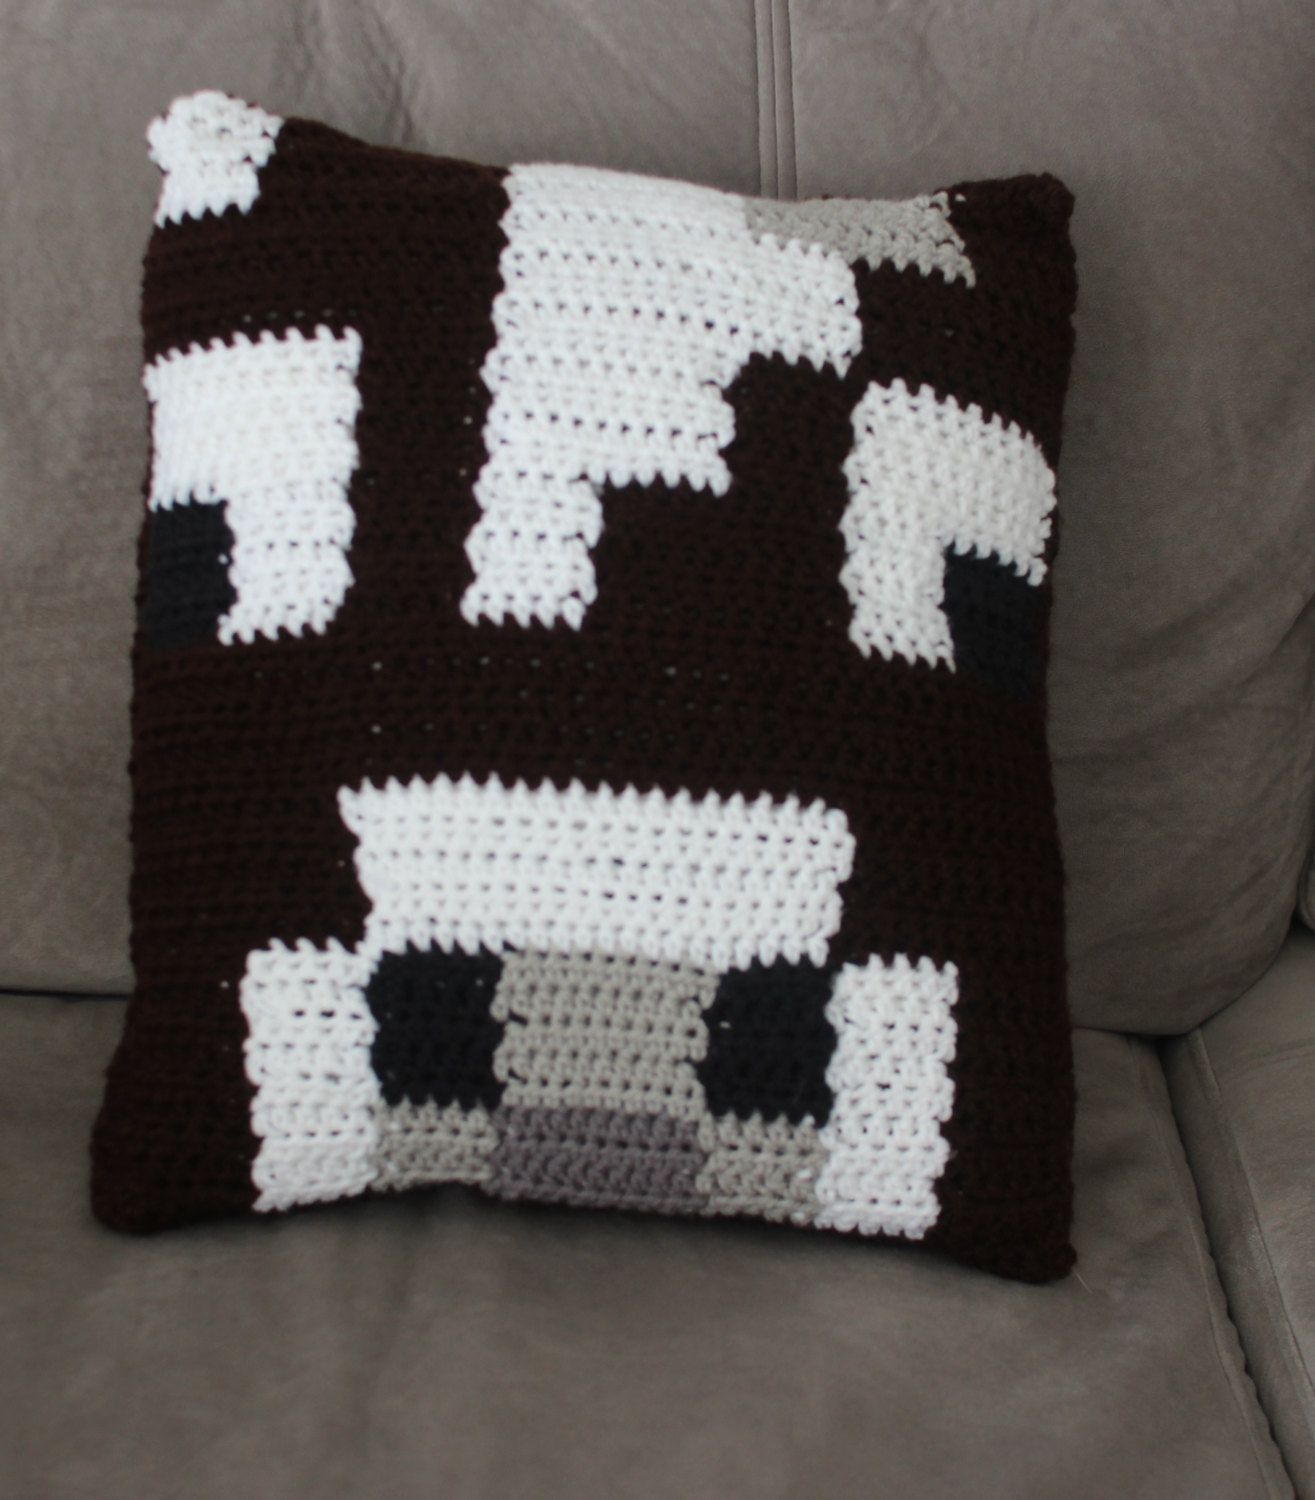 Crochet Minecraft Cow Pillow by MegaLOTT on Etsy | Mega LOTT ...